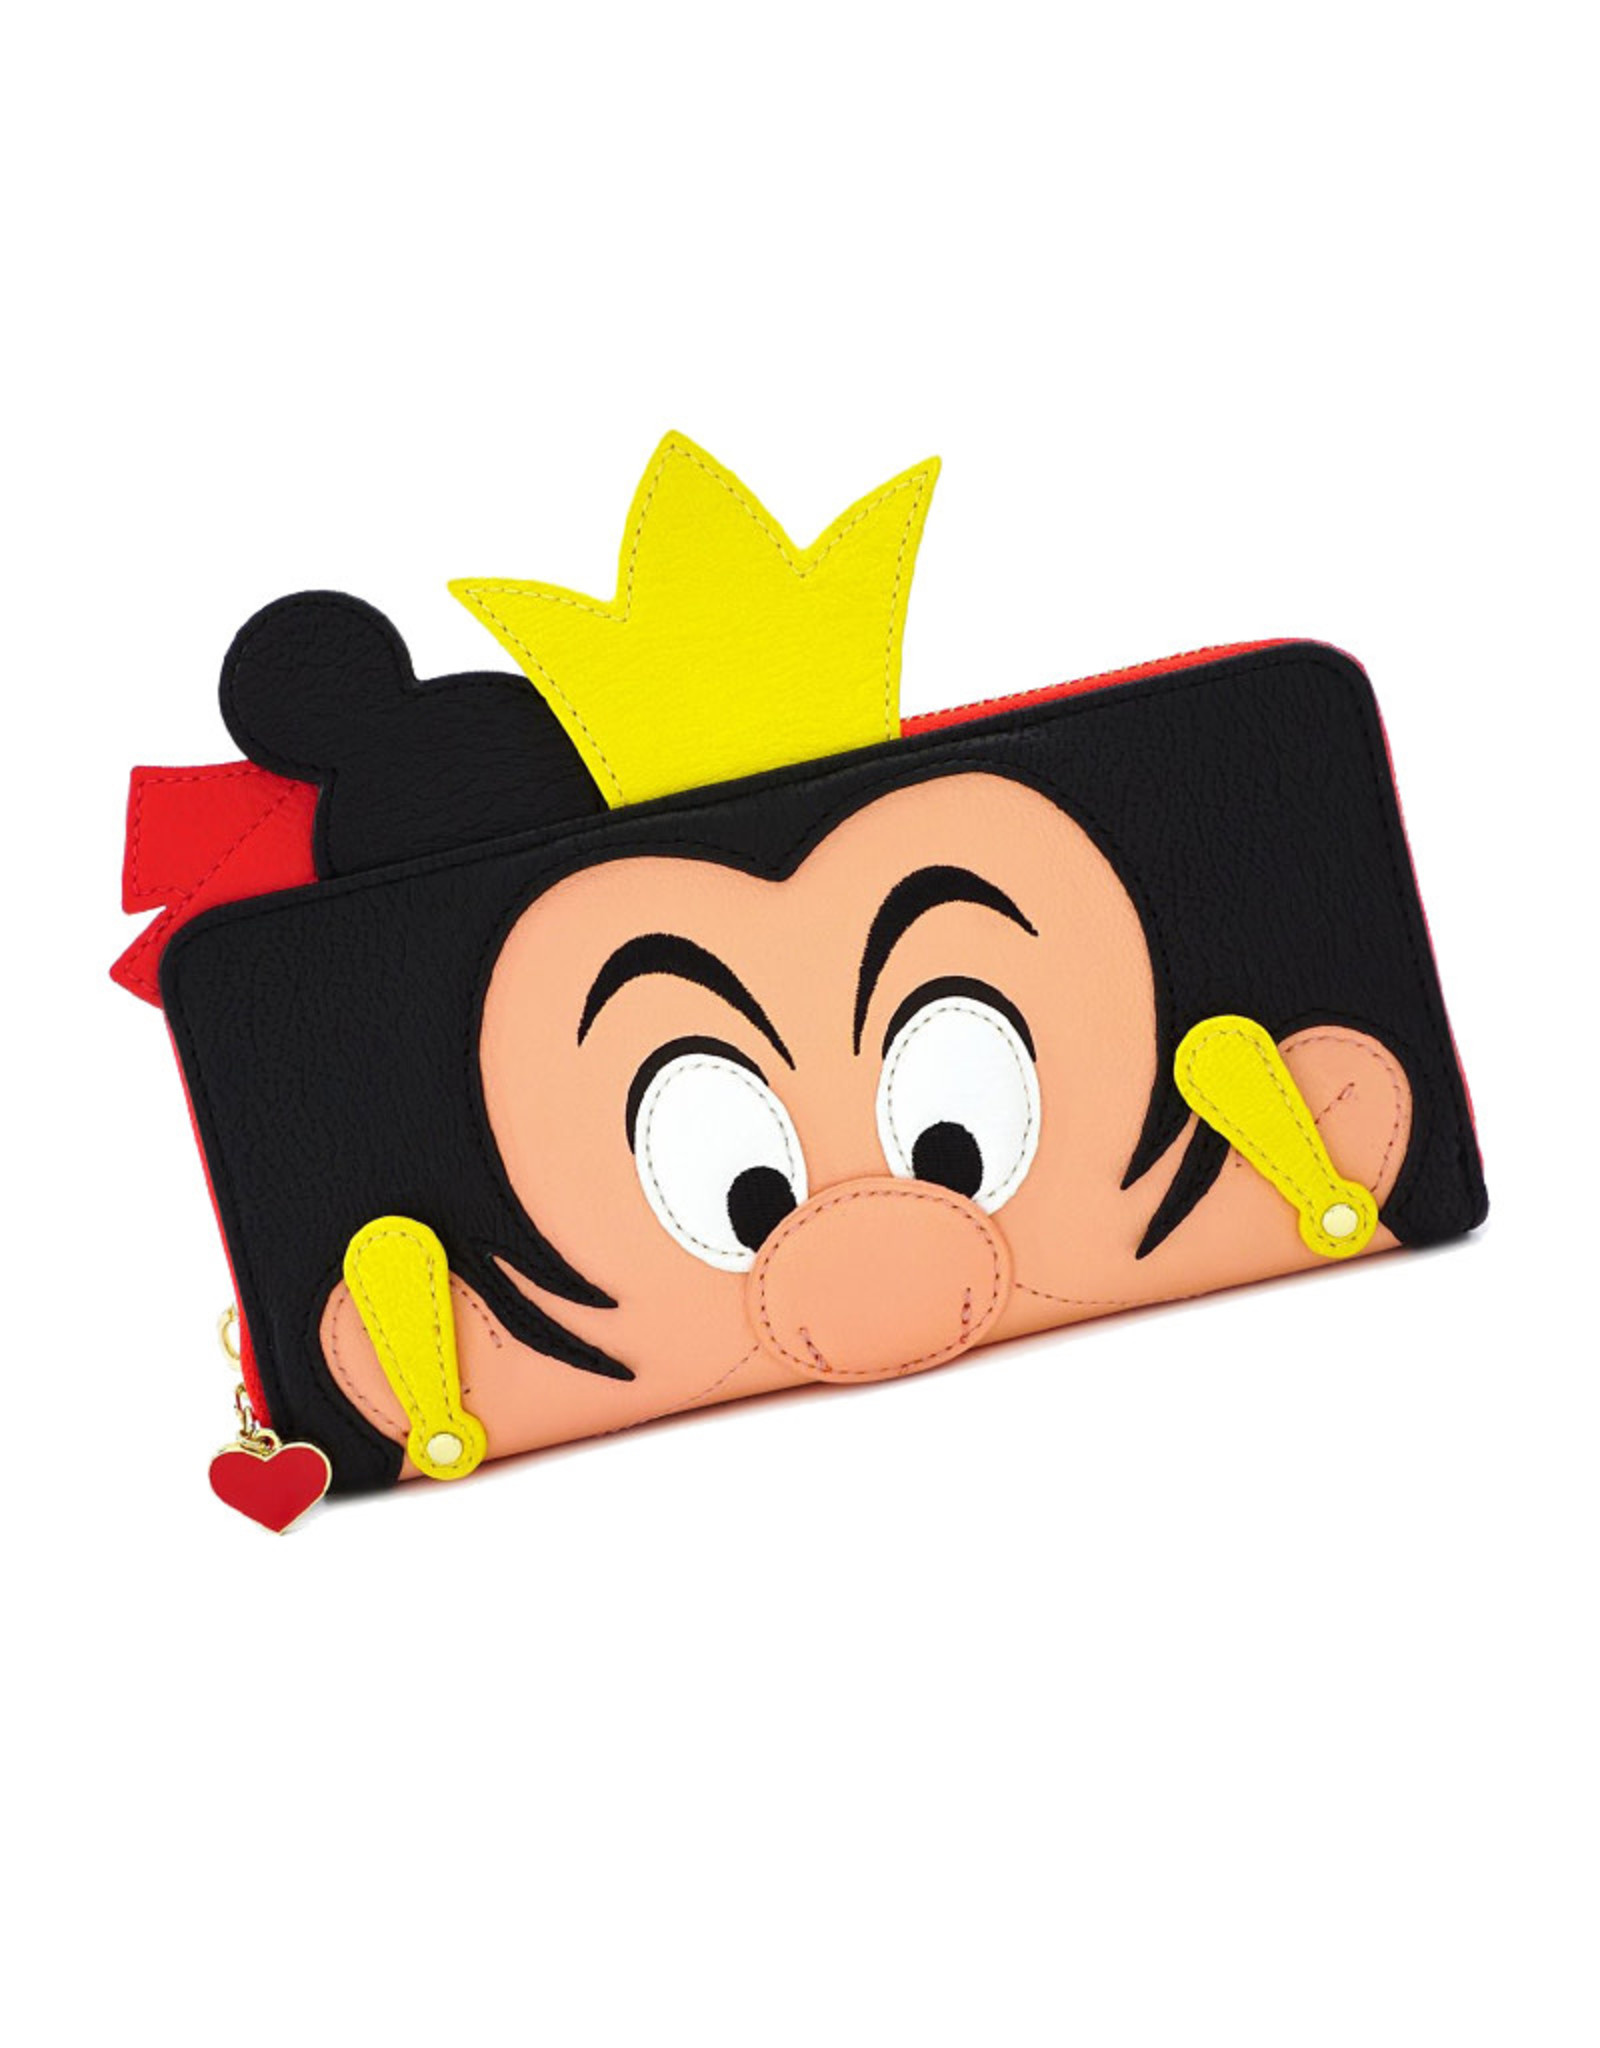 Disney ( Loungefly Wallet ) The Queen of Hearts